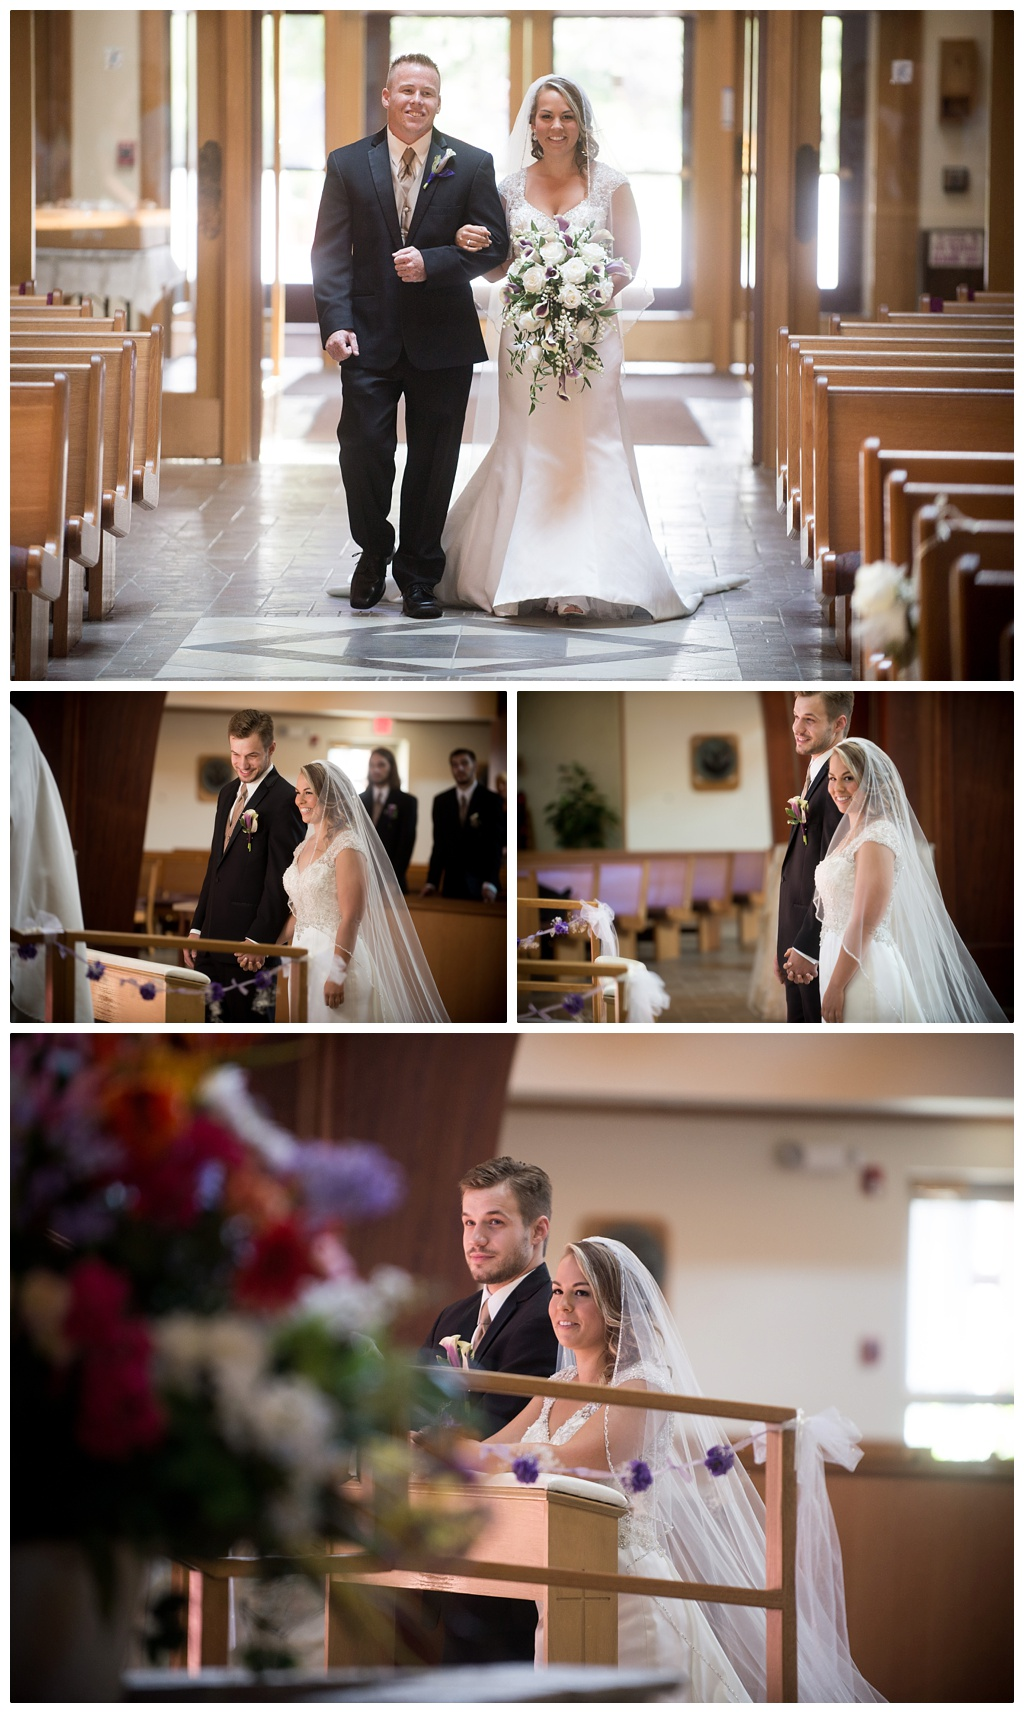 St. Gabriel of Our Lady of Sorrows, Elma NY wedding ceremony by alyissa & michael photography